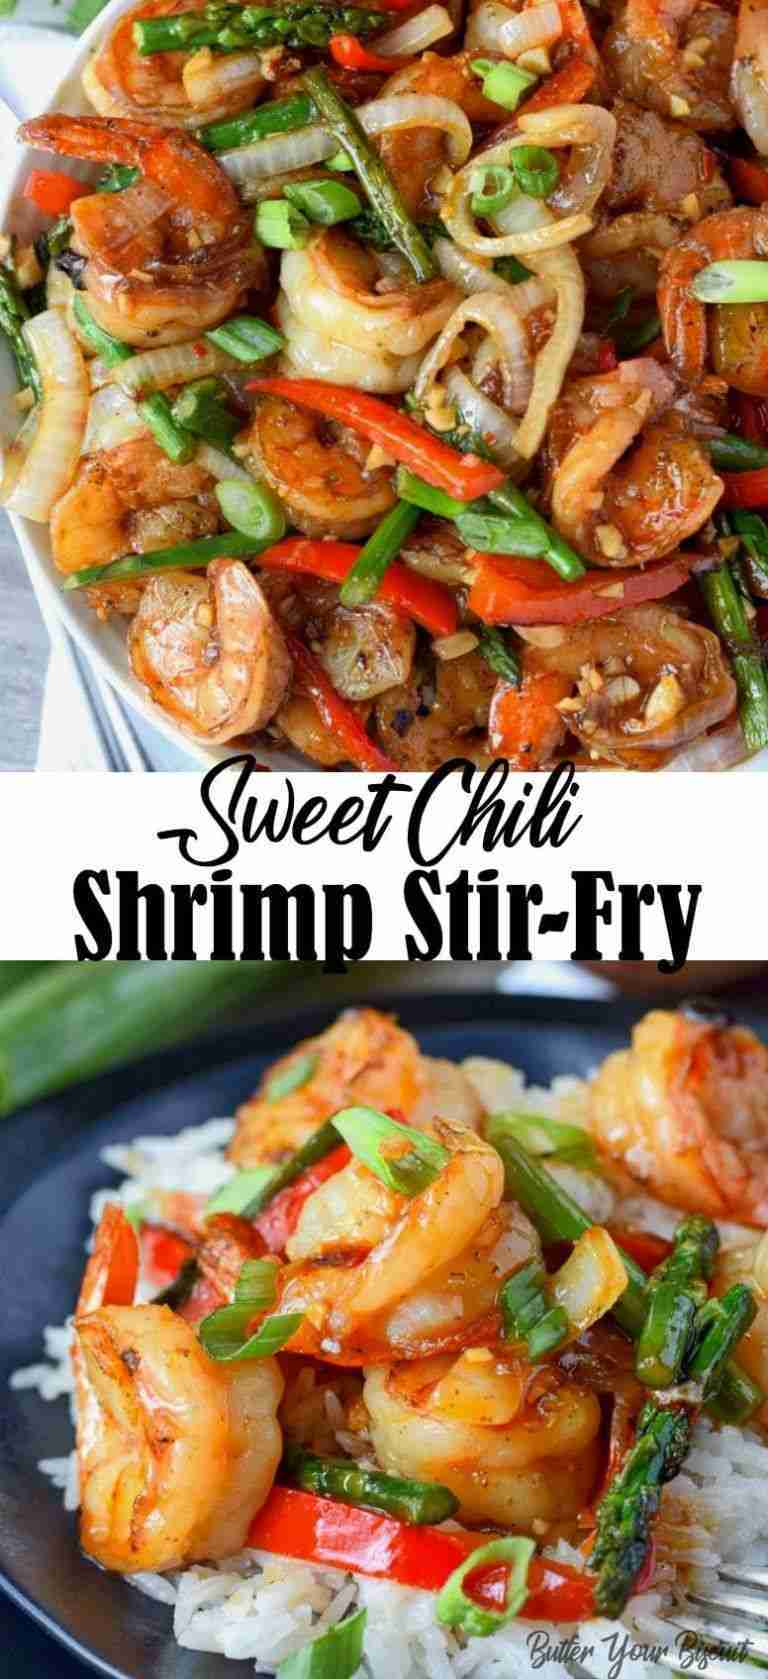 Sweet Chili Shrimp Stir Fry Easy Recipe – Butter Your Biscuit